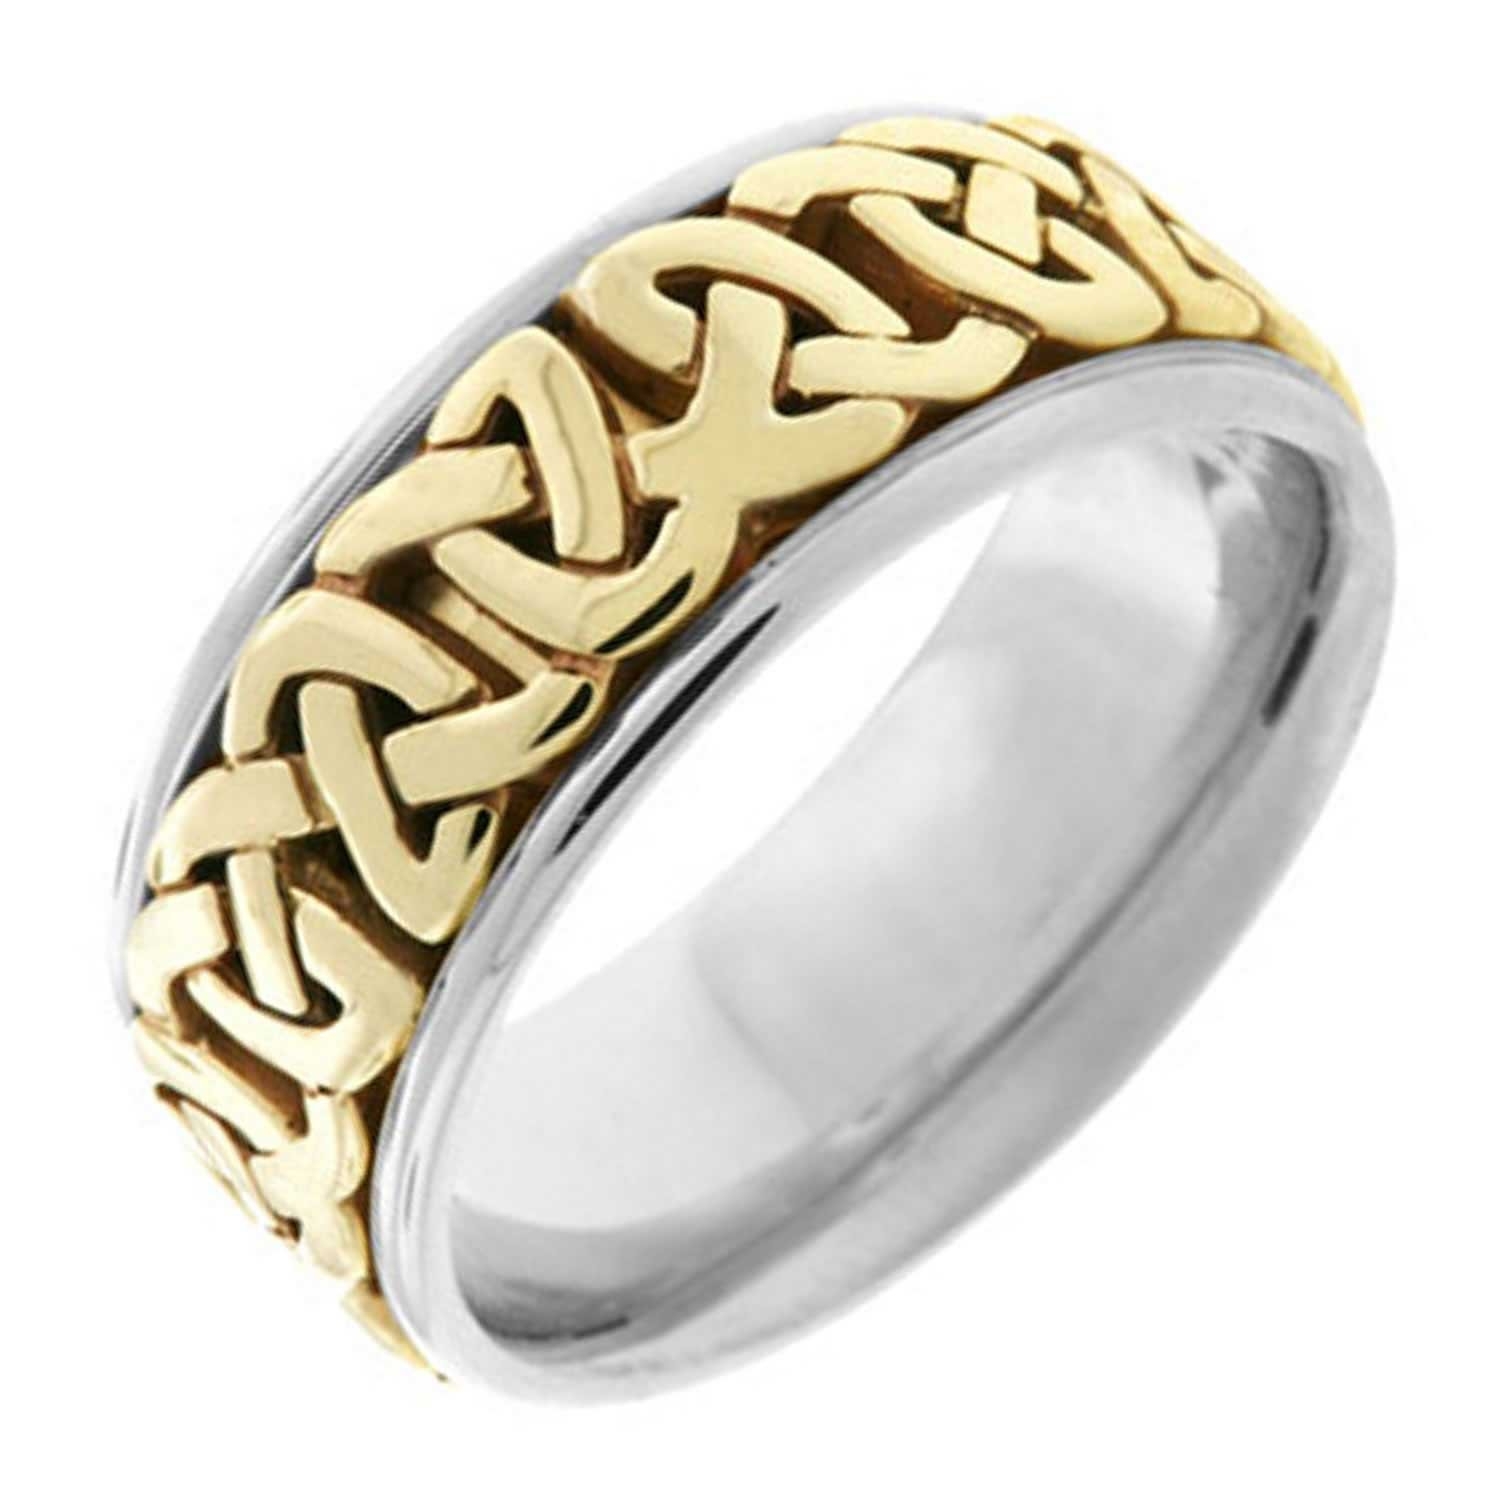 Two Tone Platinum and 18K Yellow Gold Celtic Love Knot Men's Wedding Band (8.5mm) Size-13.75c2